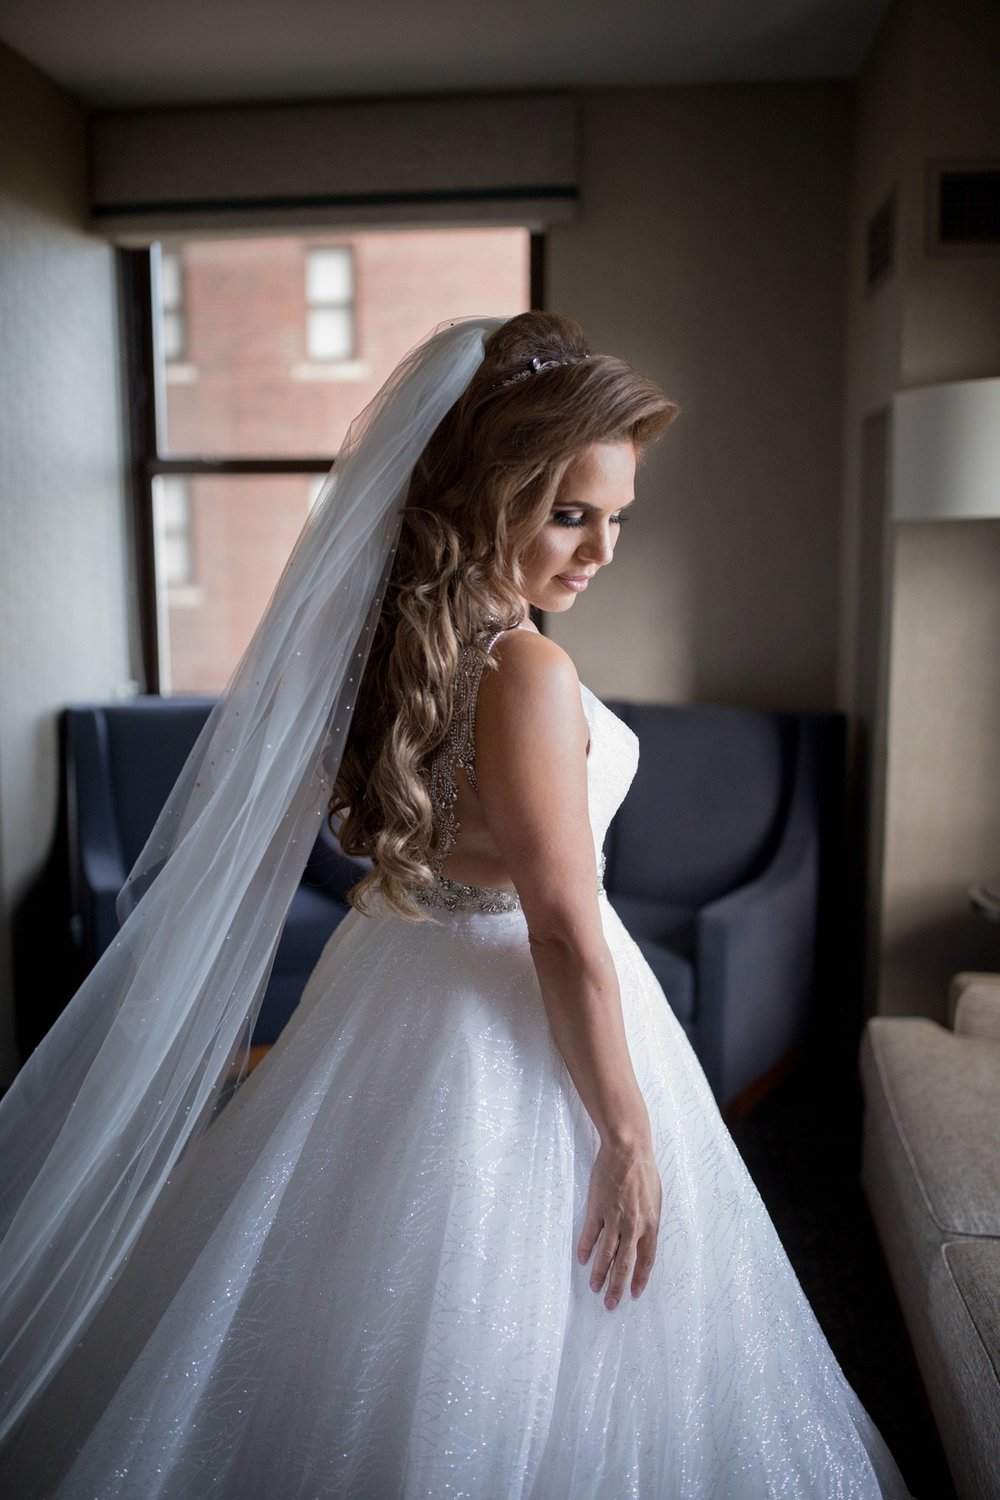 Le Cape Weddings - Laila and Anthony - Chicago Wedding - Bride Getting Ready -54.jpg